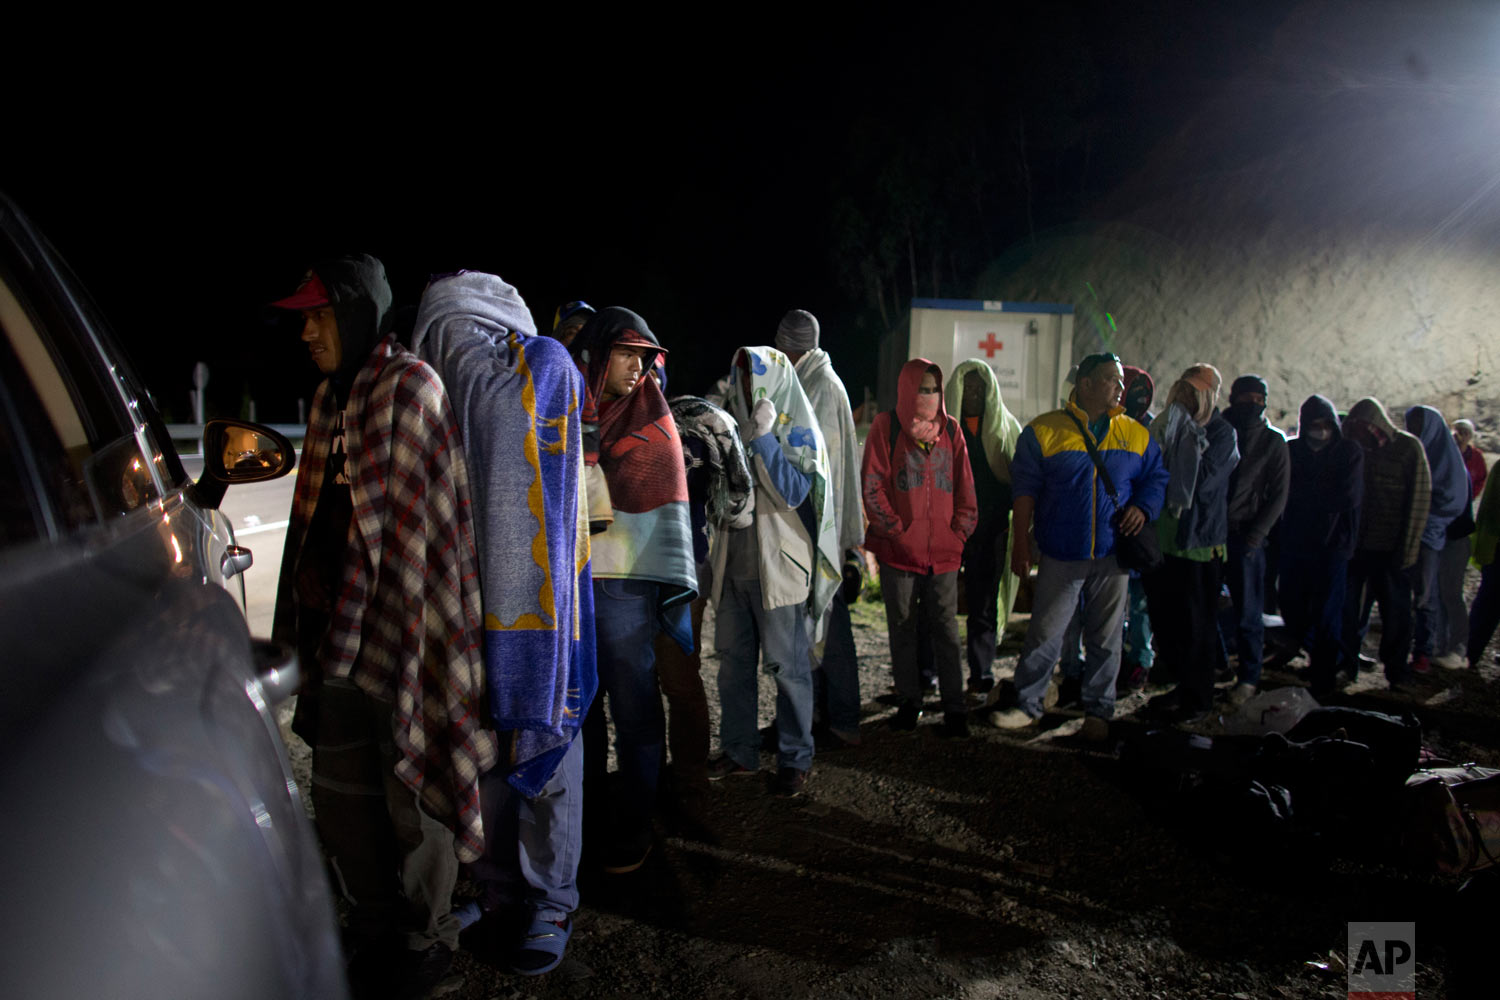 In this Aug. 31, 2018 photo published in October, Venezuelan migrants line up for free bread and coffee donated by a Colombian family from their car, at a gas station in Pamplona, Colombia. Millions have fled Venezuela's deadly shortages and spiraling hyperinflation in an exodus that rivals even the European refugee crisis in numbers. (AP Photo/Ariana Cubillos)